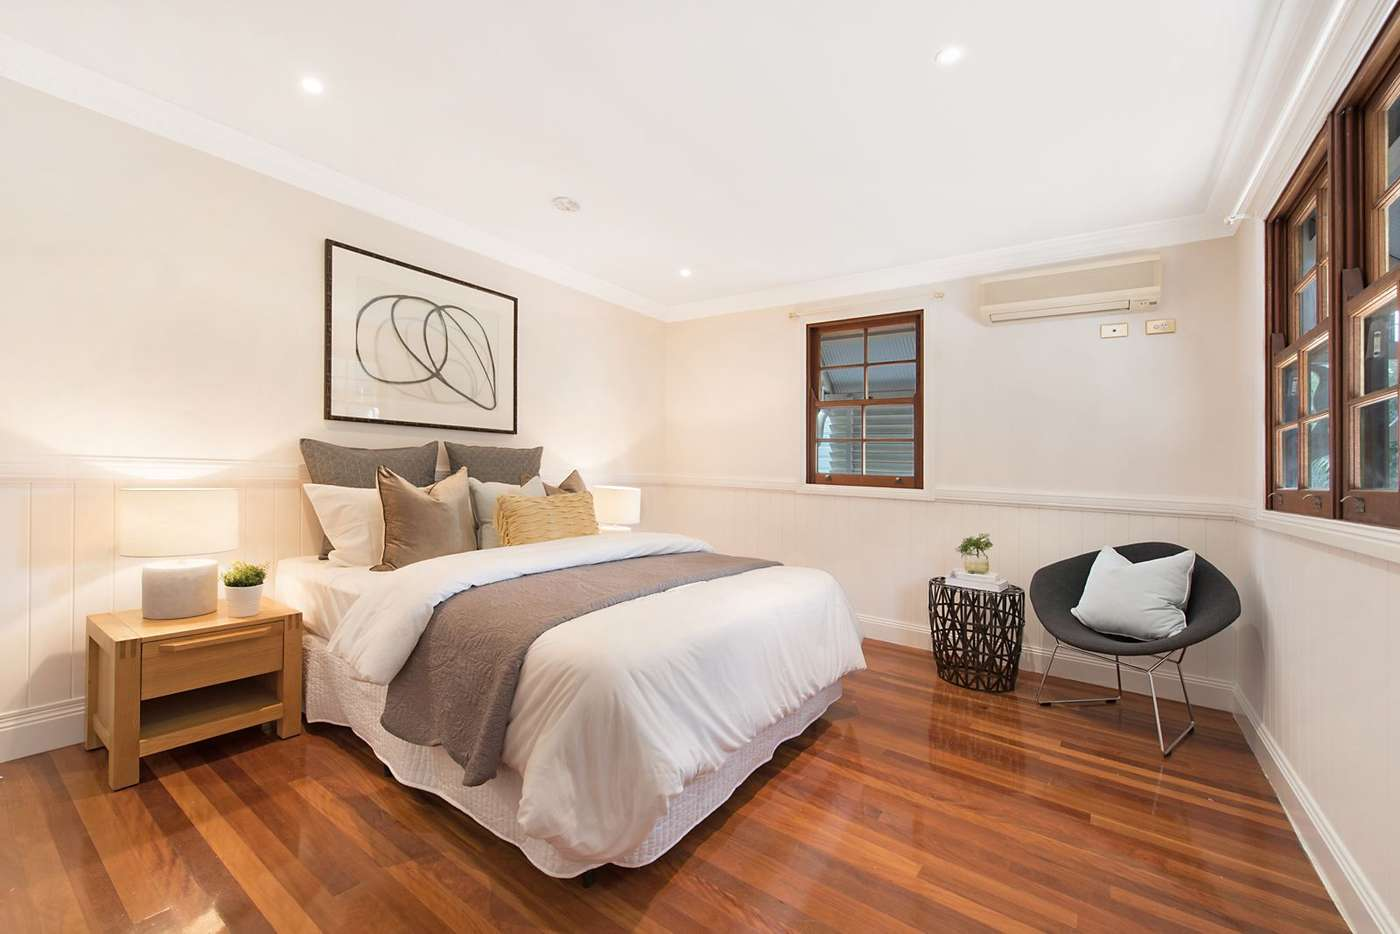 Sixth view of Homely house listing, 27 Sexton Street, Petrie Terrace QLD 4000